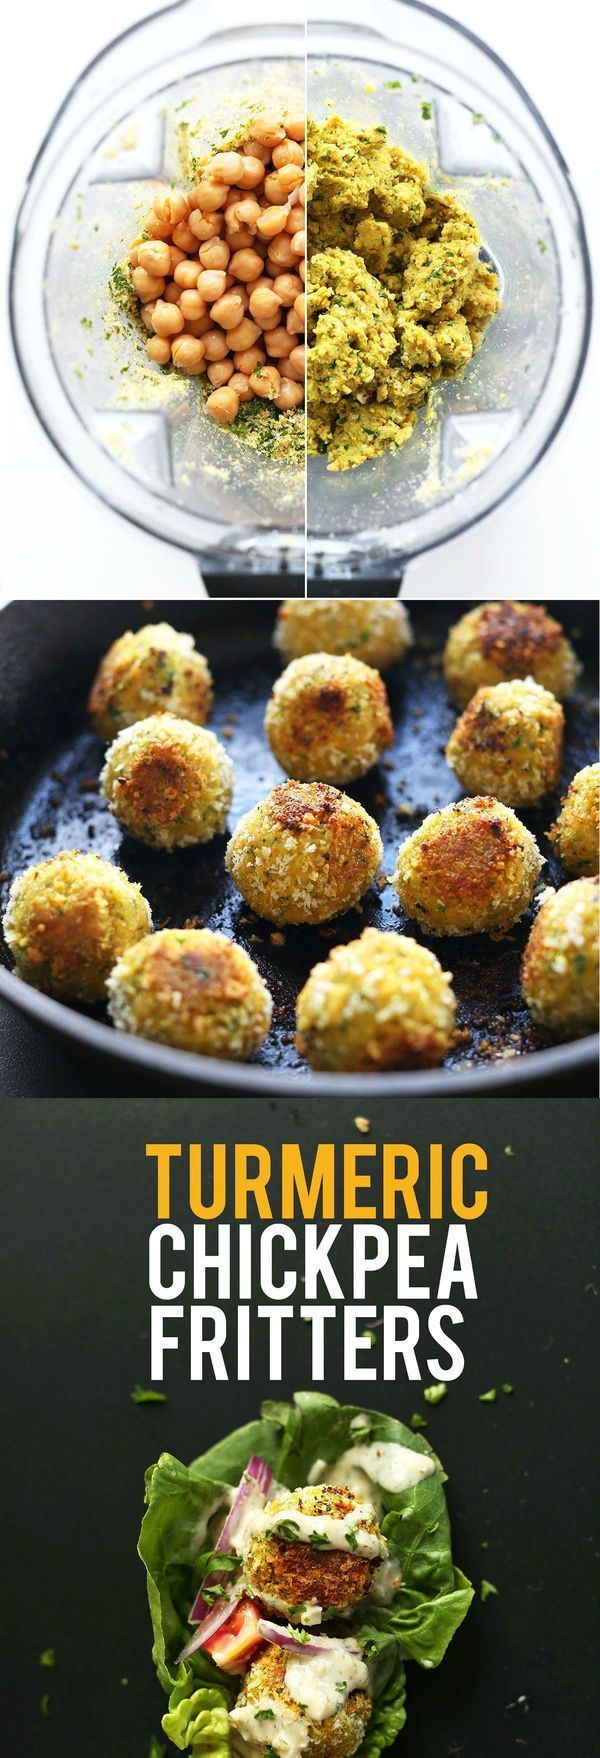 AMAZING Vegan 30 Minute TURMERIC Chickpea Fritters! Little falafel-like pillows of bliss // SO flavorful!